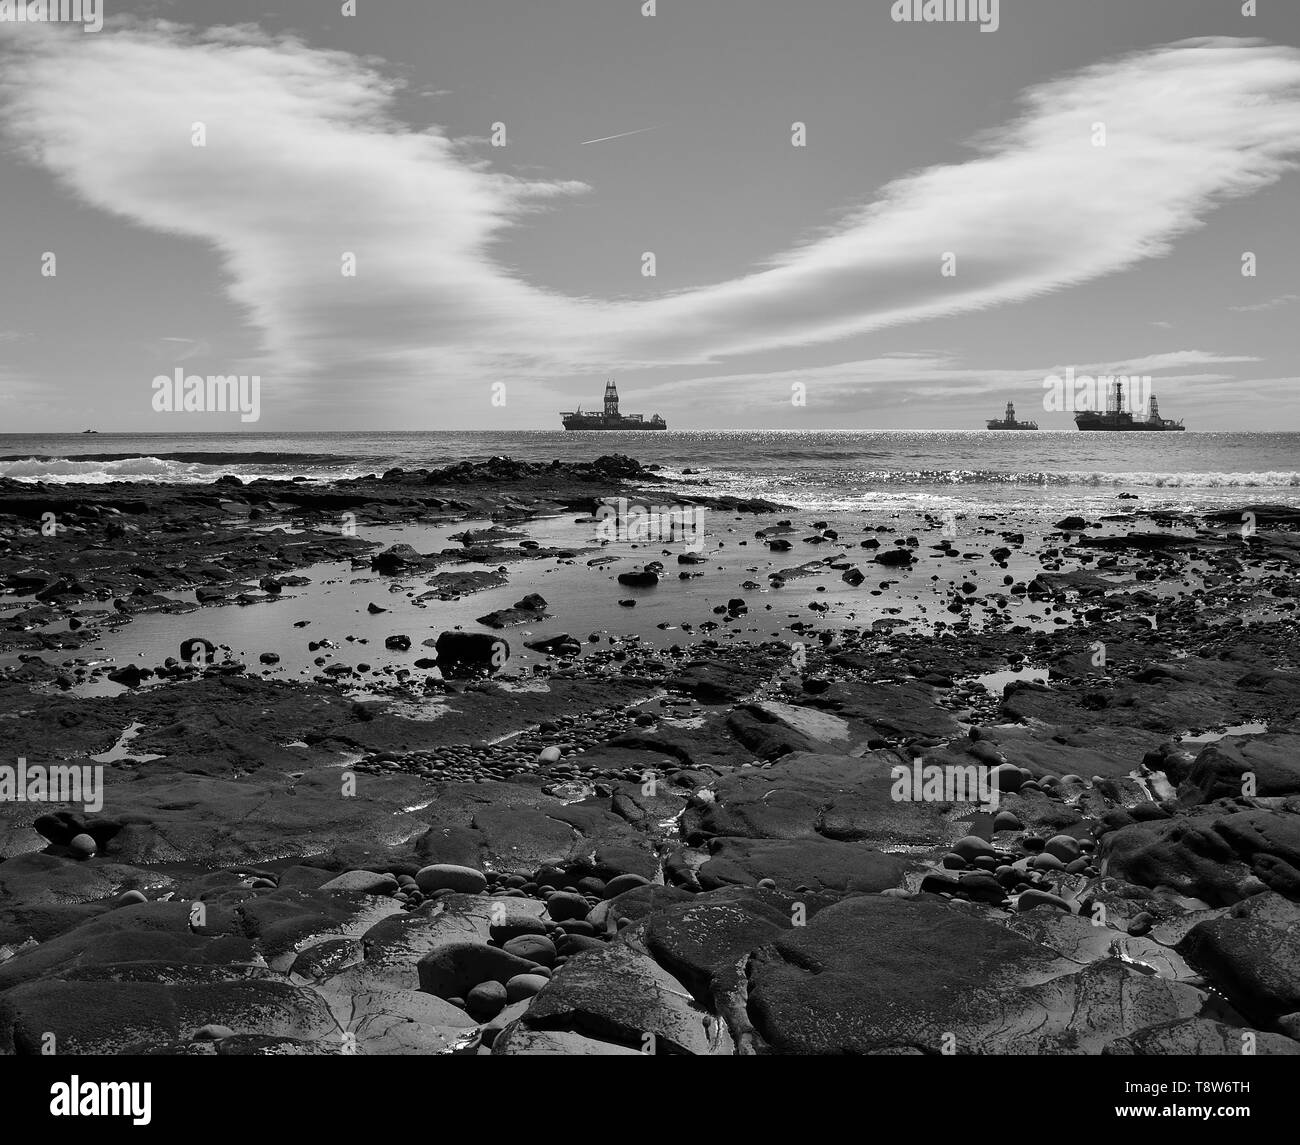 Coast landscape at low tide, oil rigs and cloudy sky, black and white, bay of Las Palmas, Gran Canaria - Stock Image